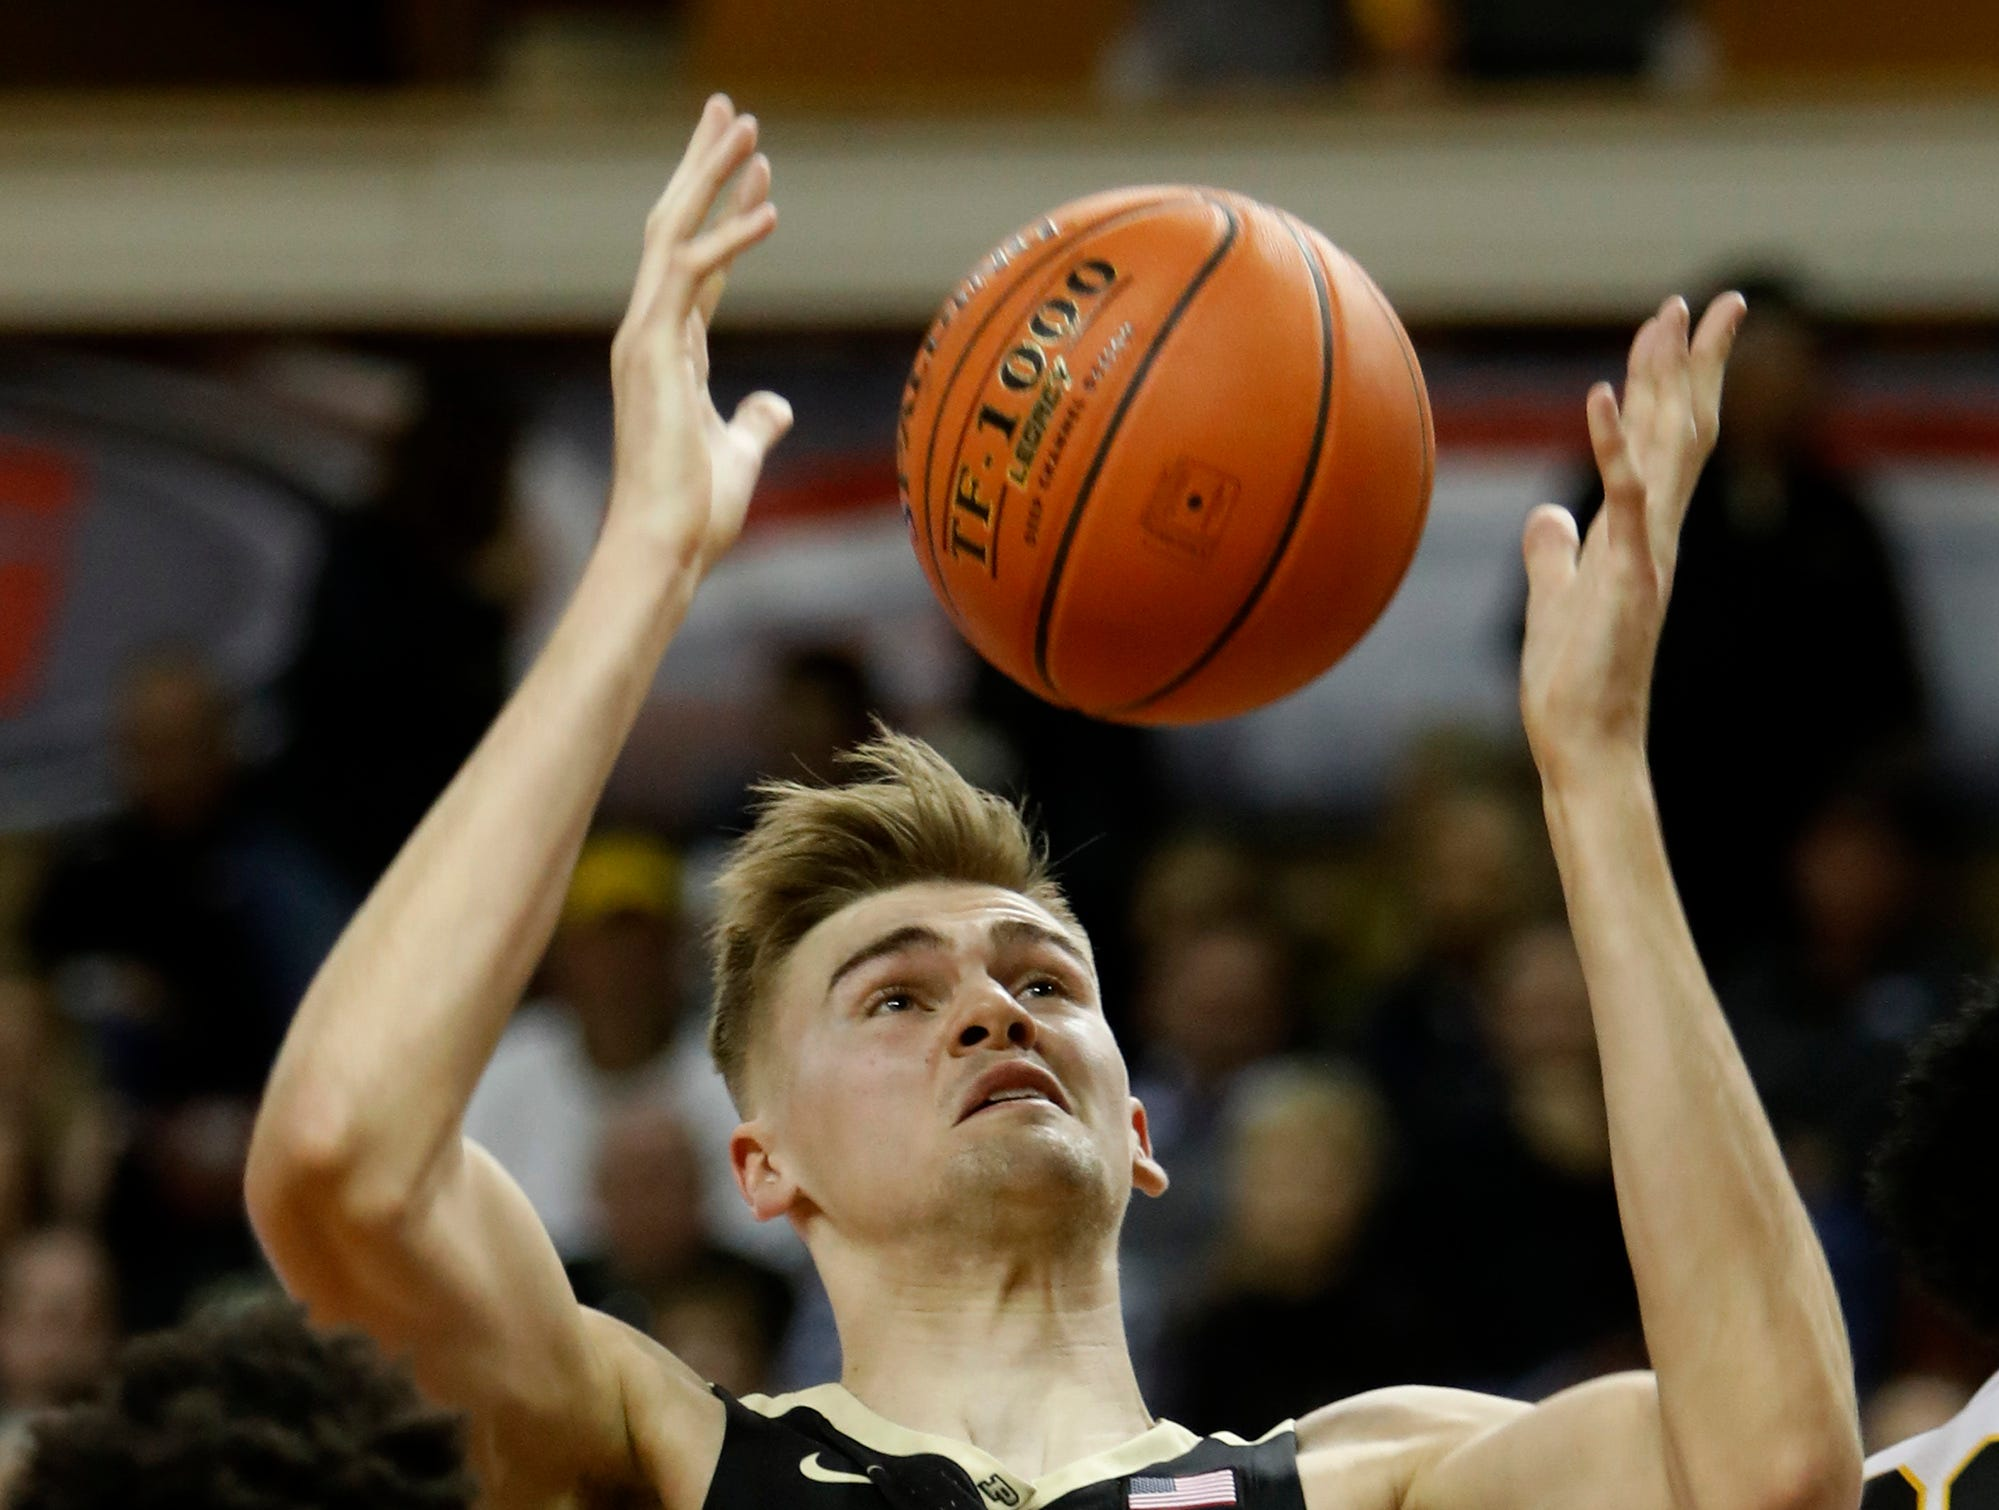 Purdue's Matt Haarms, center, grabs a rebound in front of Appalachian State's Joseph Battle, left, during the first half of an NCAA college basketball game at the Charleston Classic on Thursday, Nov. 15, 2018, in Charleston, S.C. (AP Photo/Mic Smith)